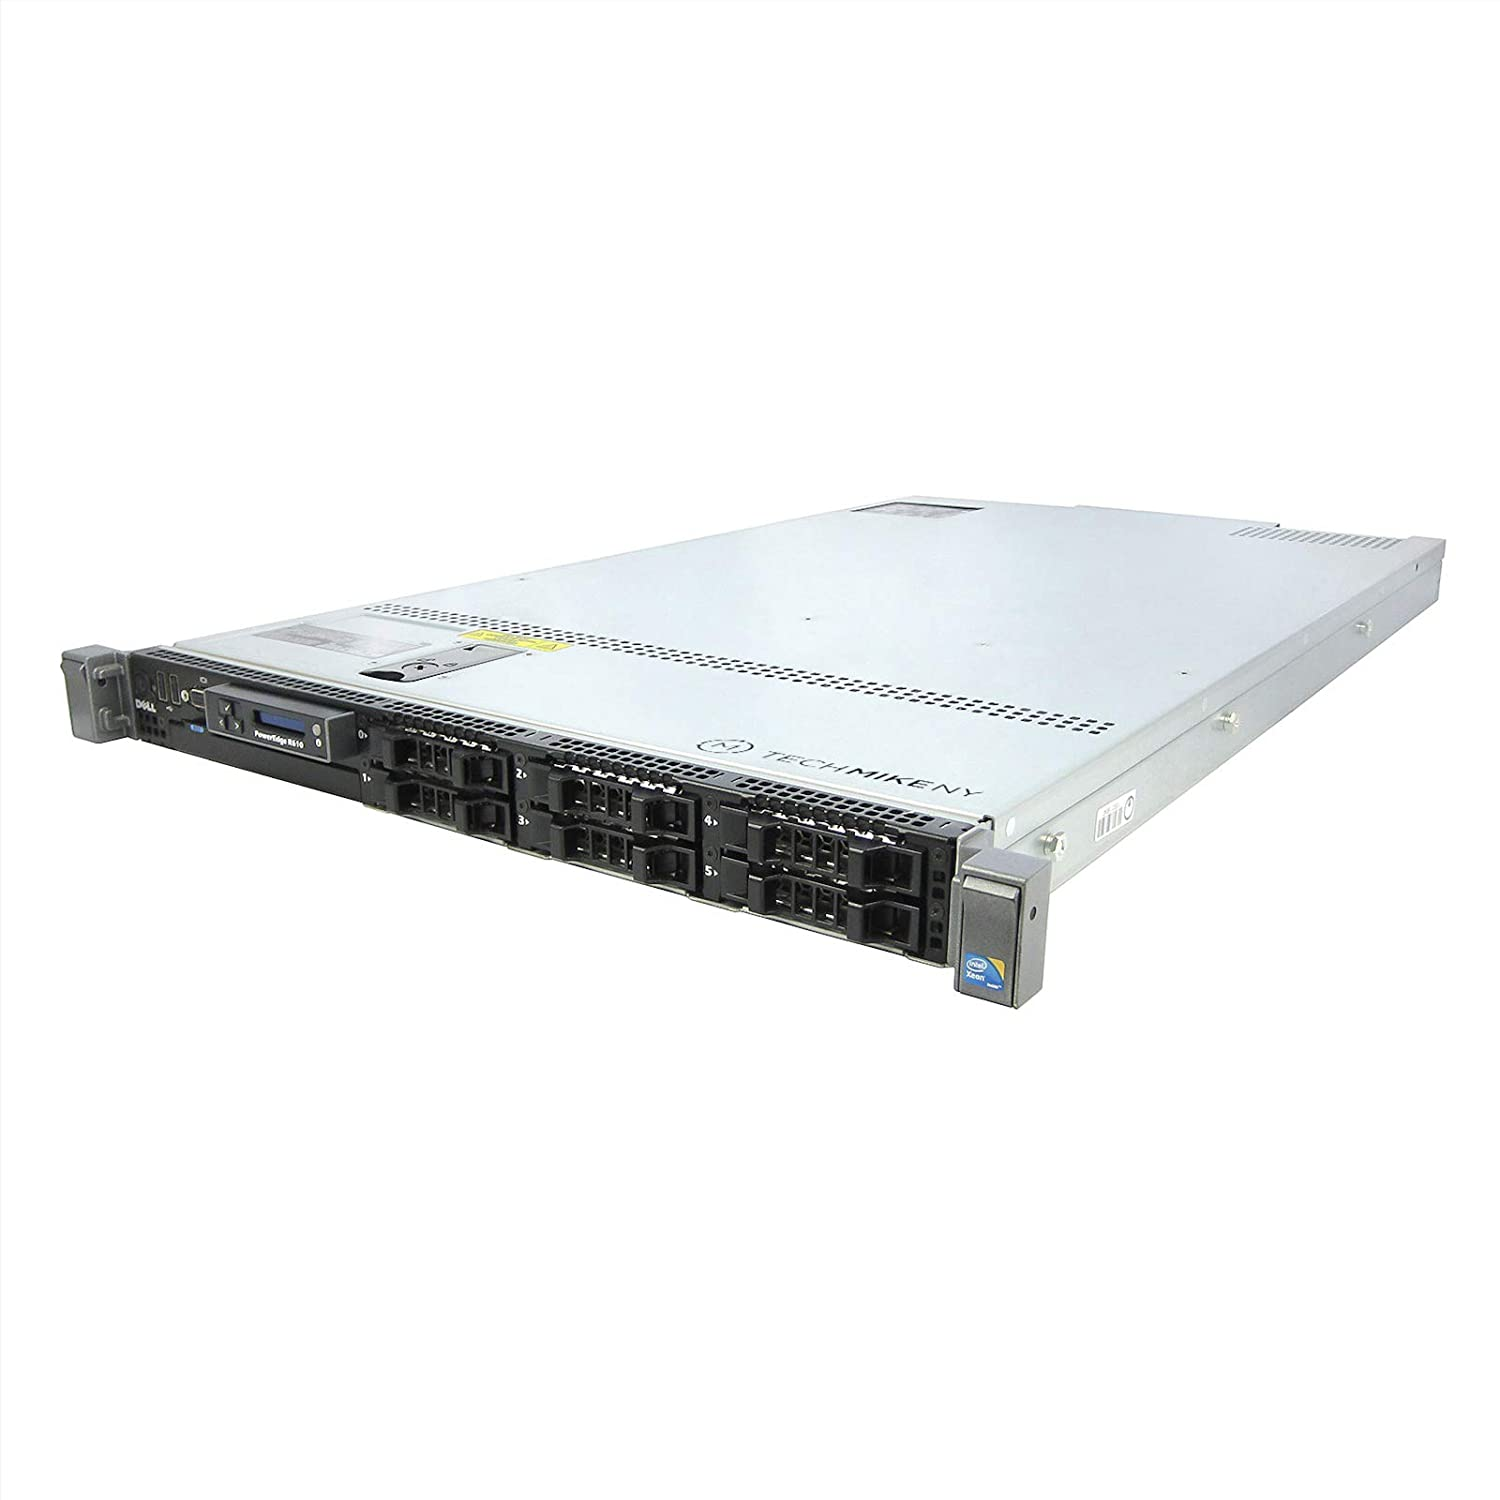 Premium Dell PowerEdge R610 Server 2x 3.33Ghz X5680 6C 48GB (Certified Refurbished) Dell Computers Dell PowerEdge R610 Gen II